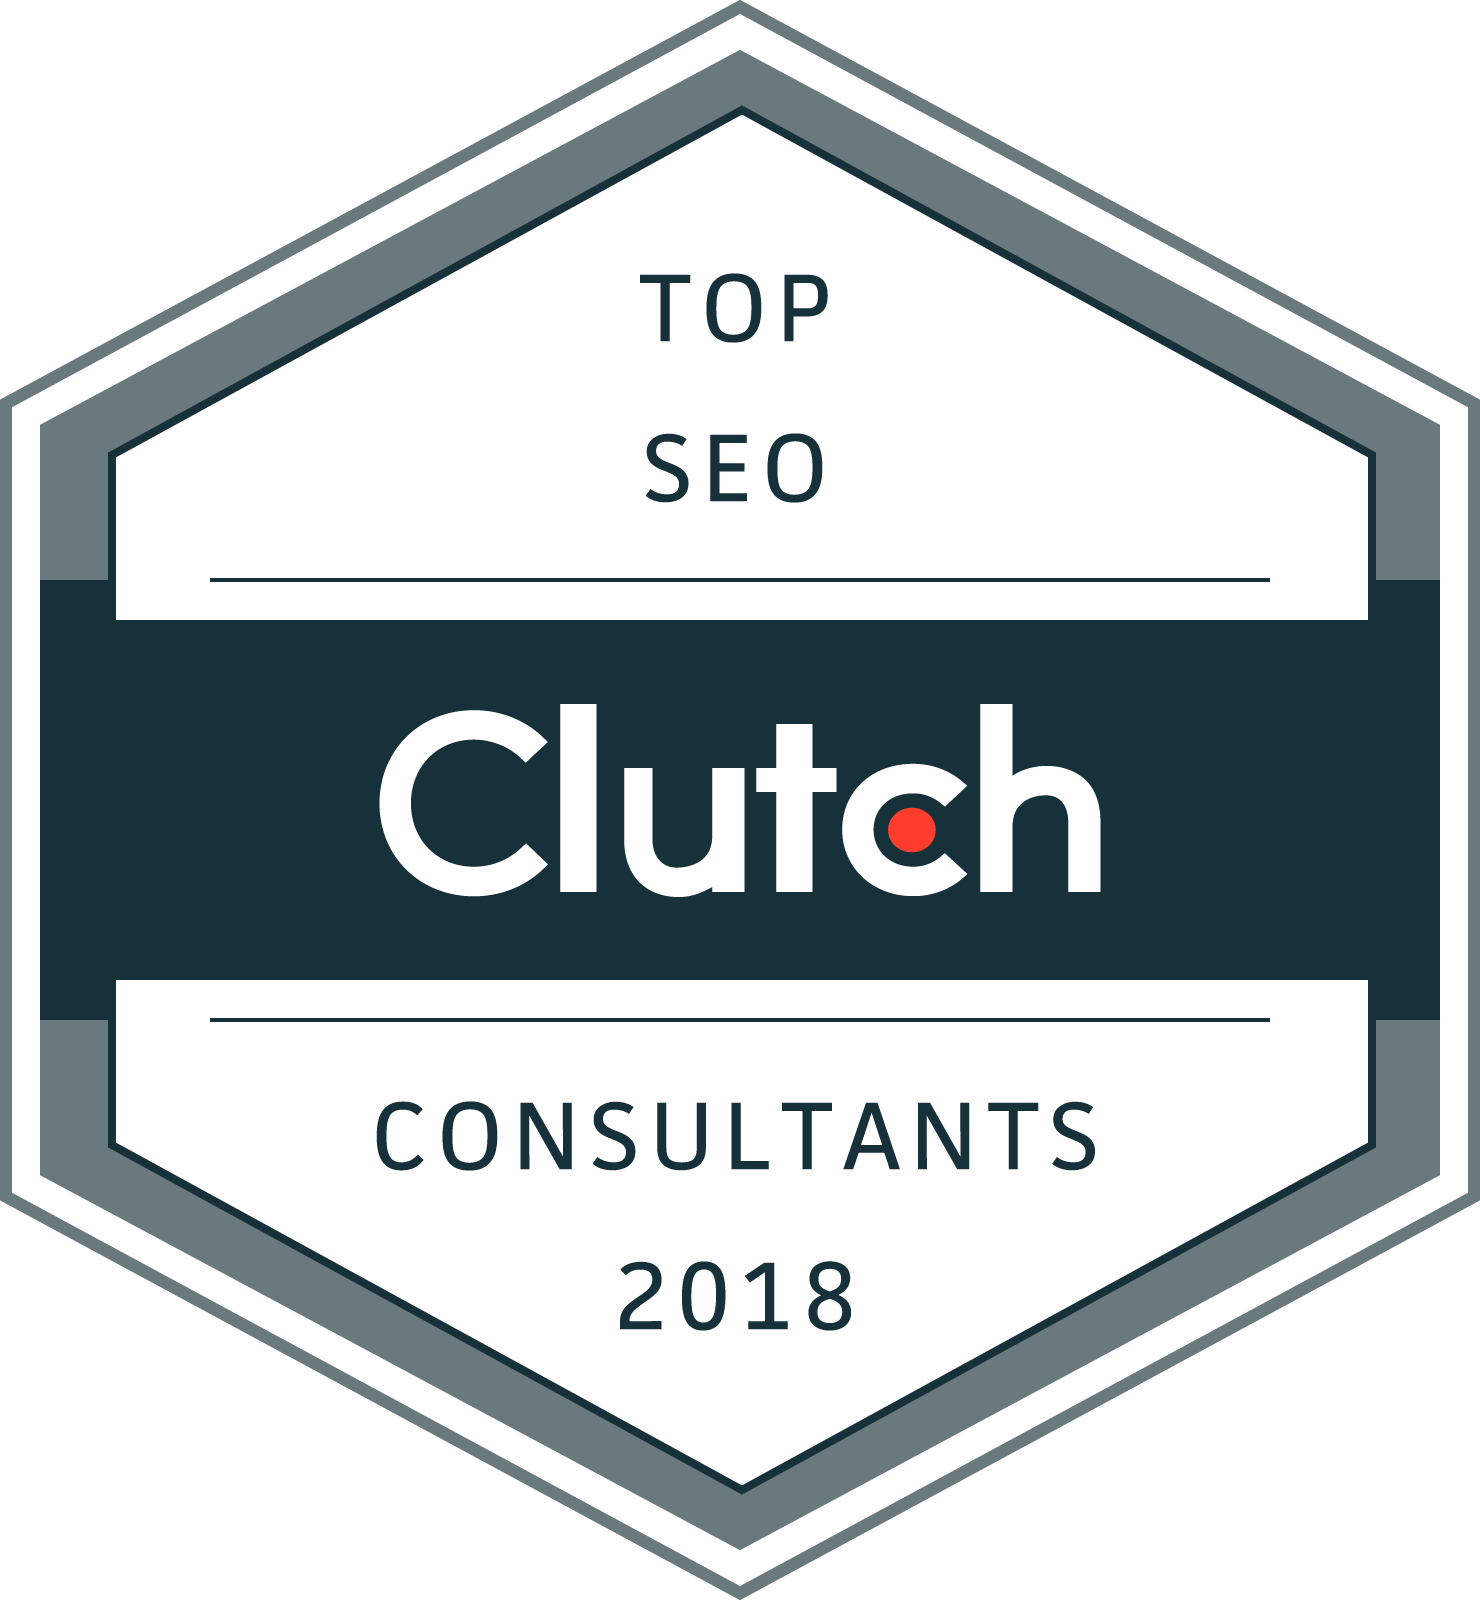 Top SEO Consultants UK